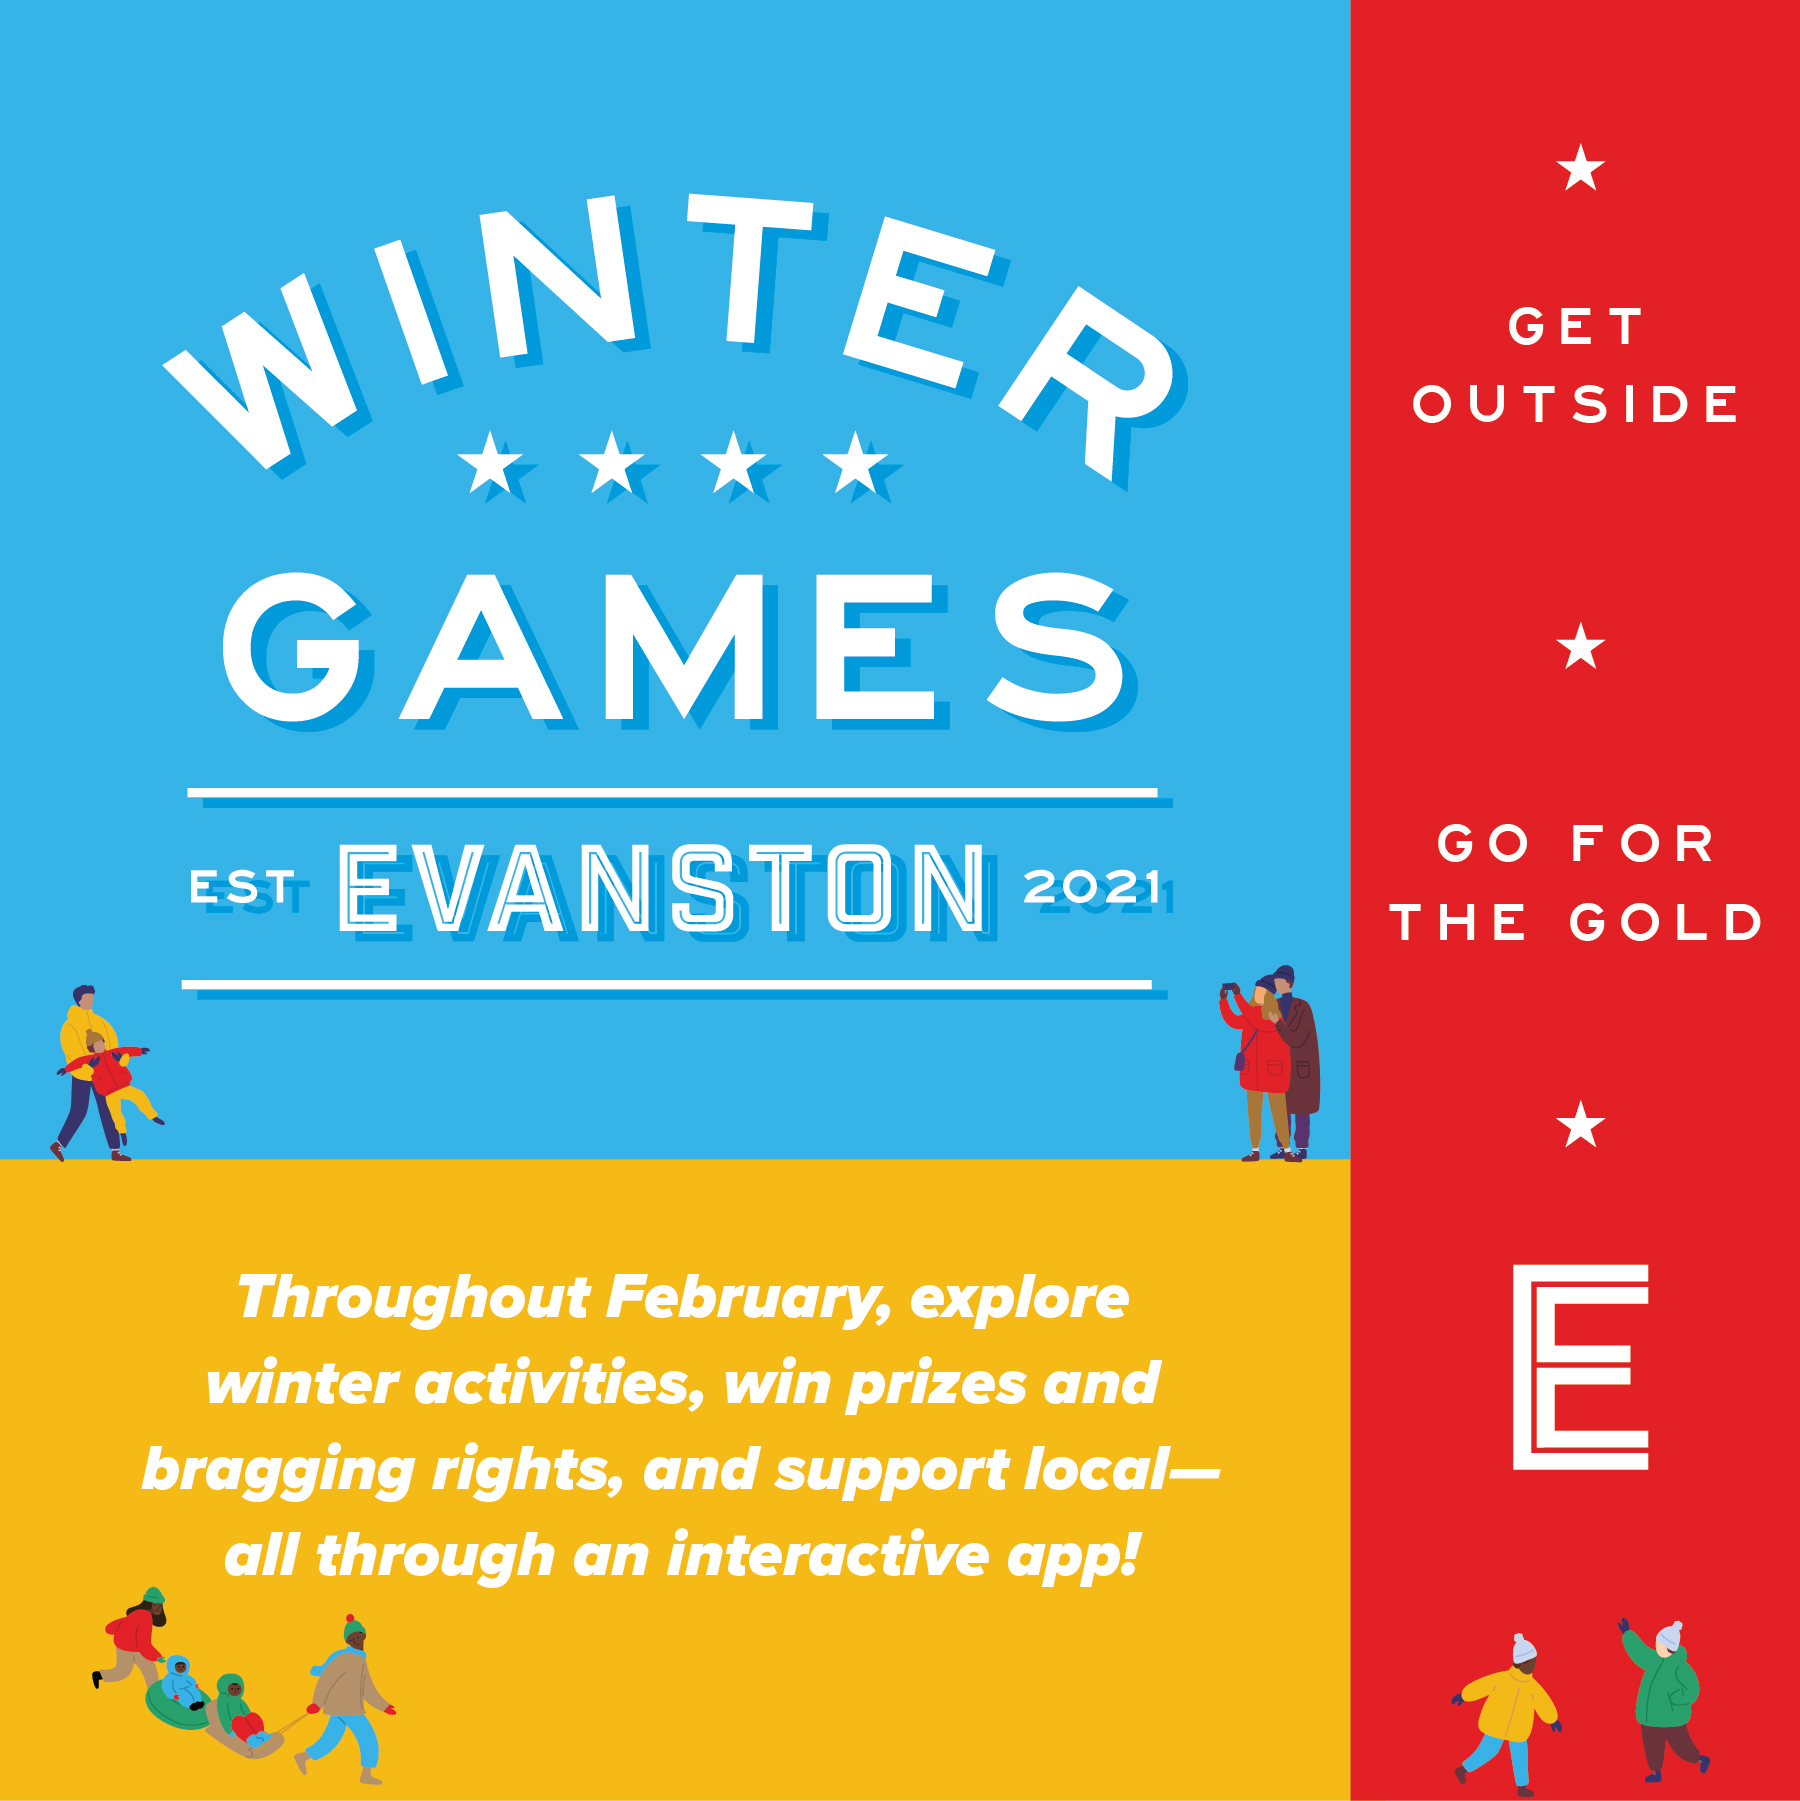 Evanston Winter Games - and support local - all through an interactive app!Get Outside, go for the gold. Throughout February, explore winter activities, win prizes